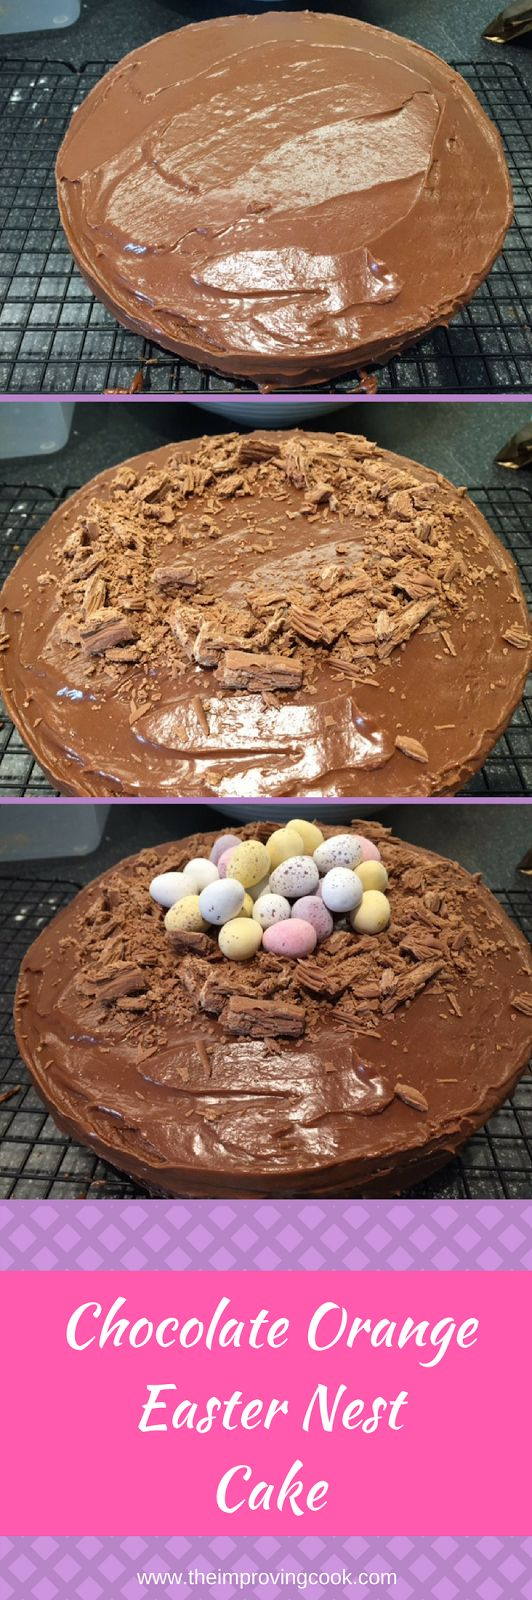 The Improving Cook- Chocolate Orange Easter Nest Cake. Perfect Easter cake for serving to visitors. A Beautiful yellow sponge cake, filled with orange curd and iced with chocolate gananche. Topped off with Cadbury's flake and Cadbury's Mini Eggs.